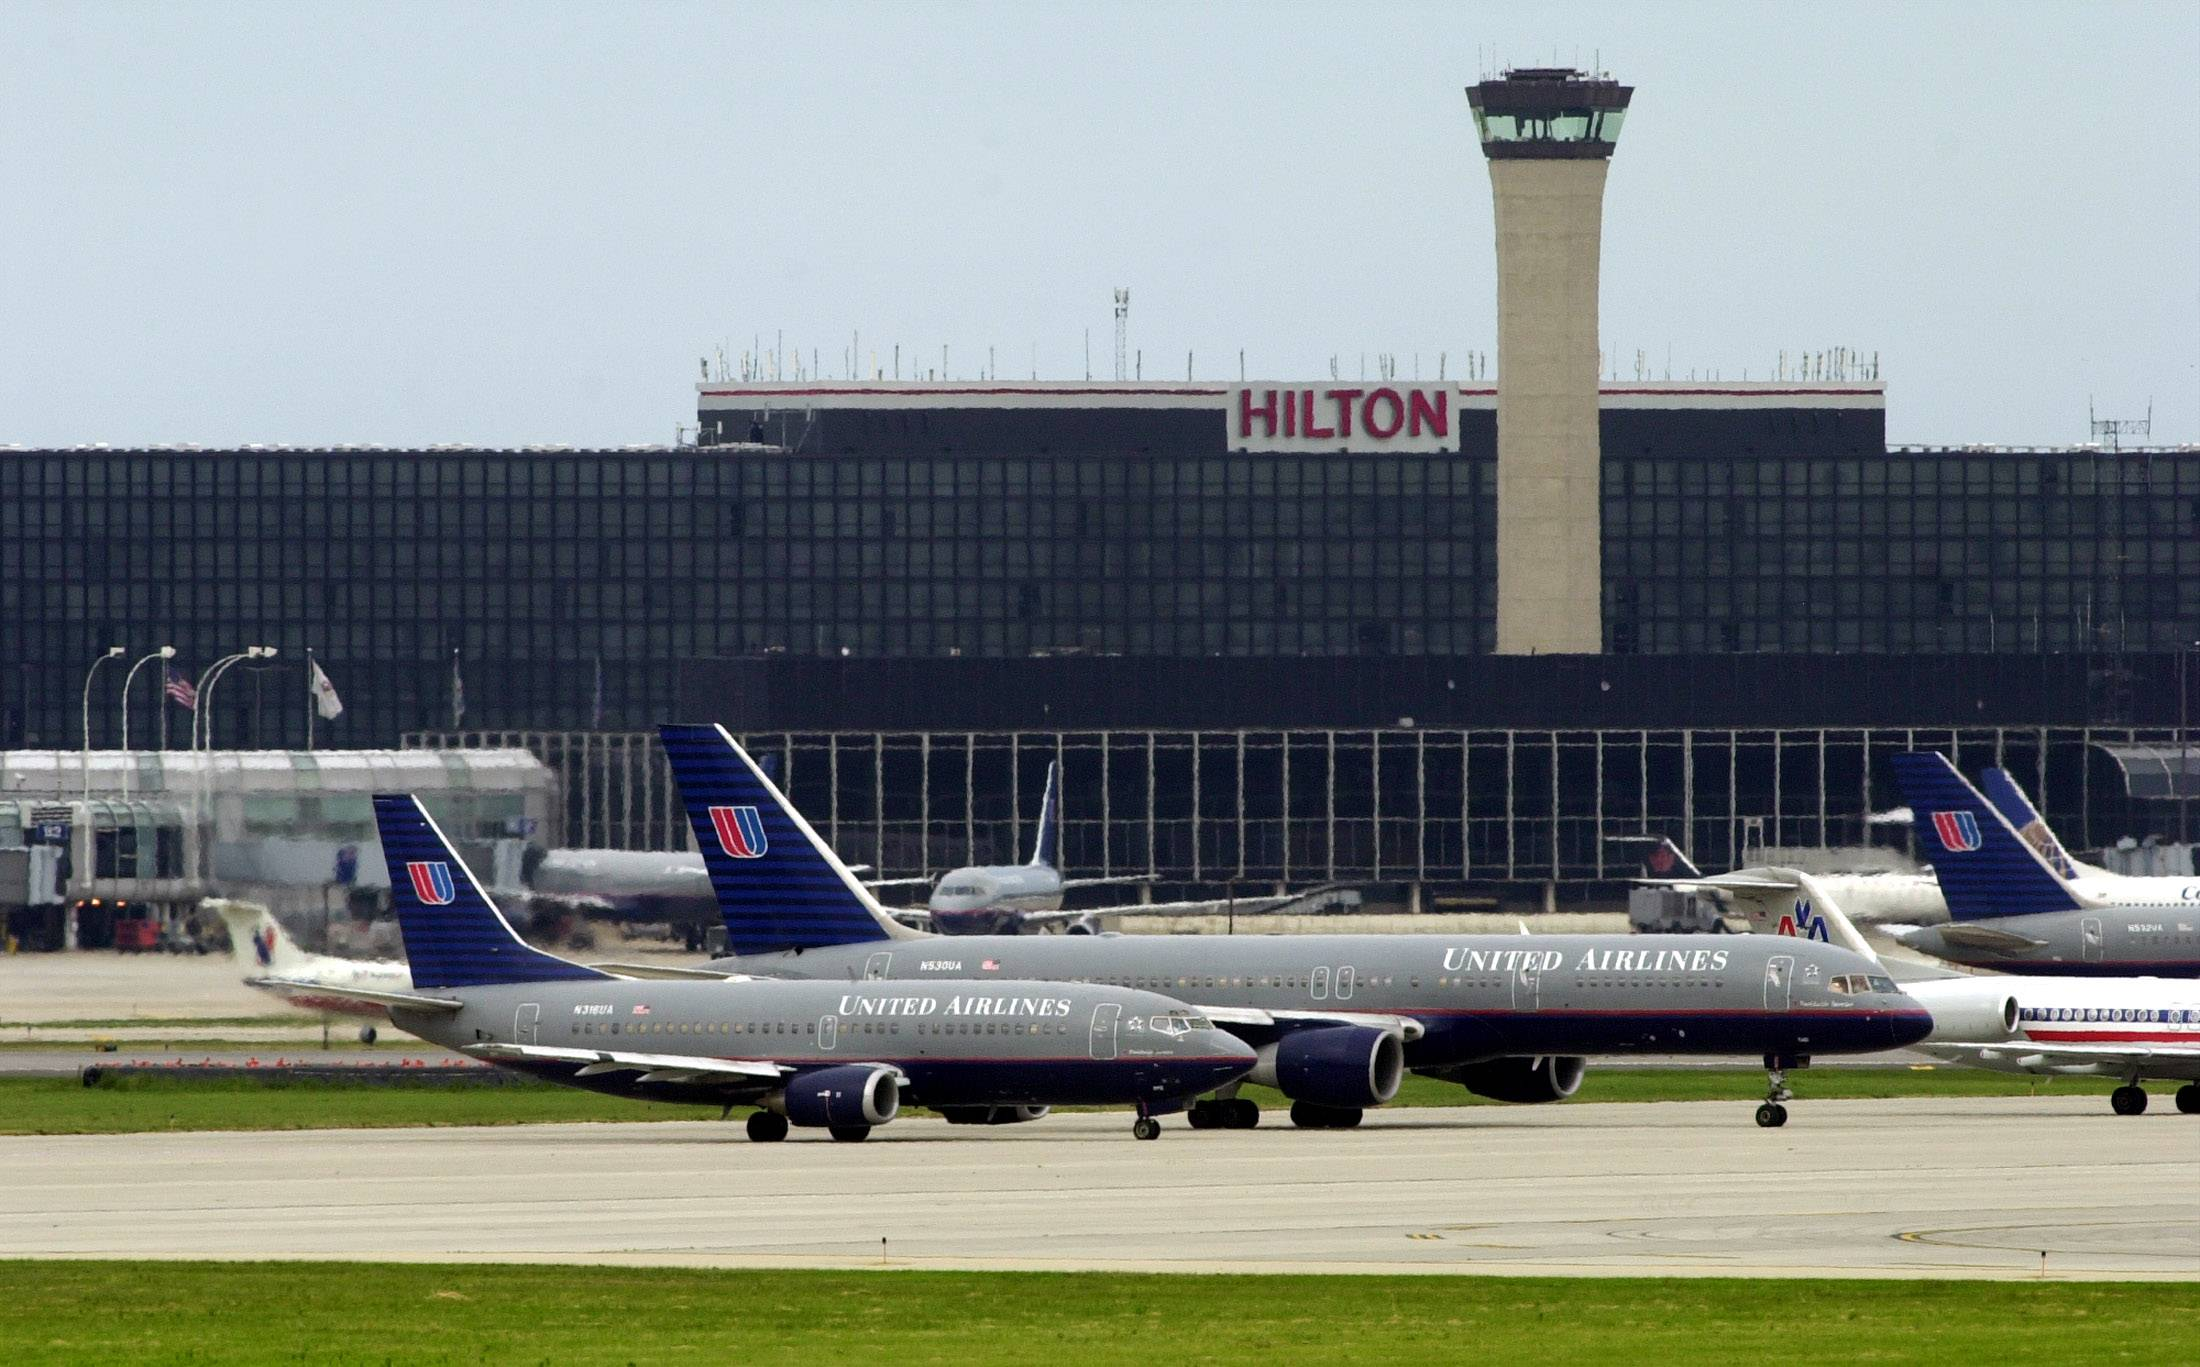 The amount of cargo moving through Chicago's O'Hare International Airport is increasing, as the city expands runway capacity and builds new cargo facilities.